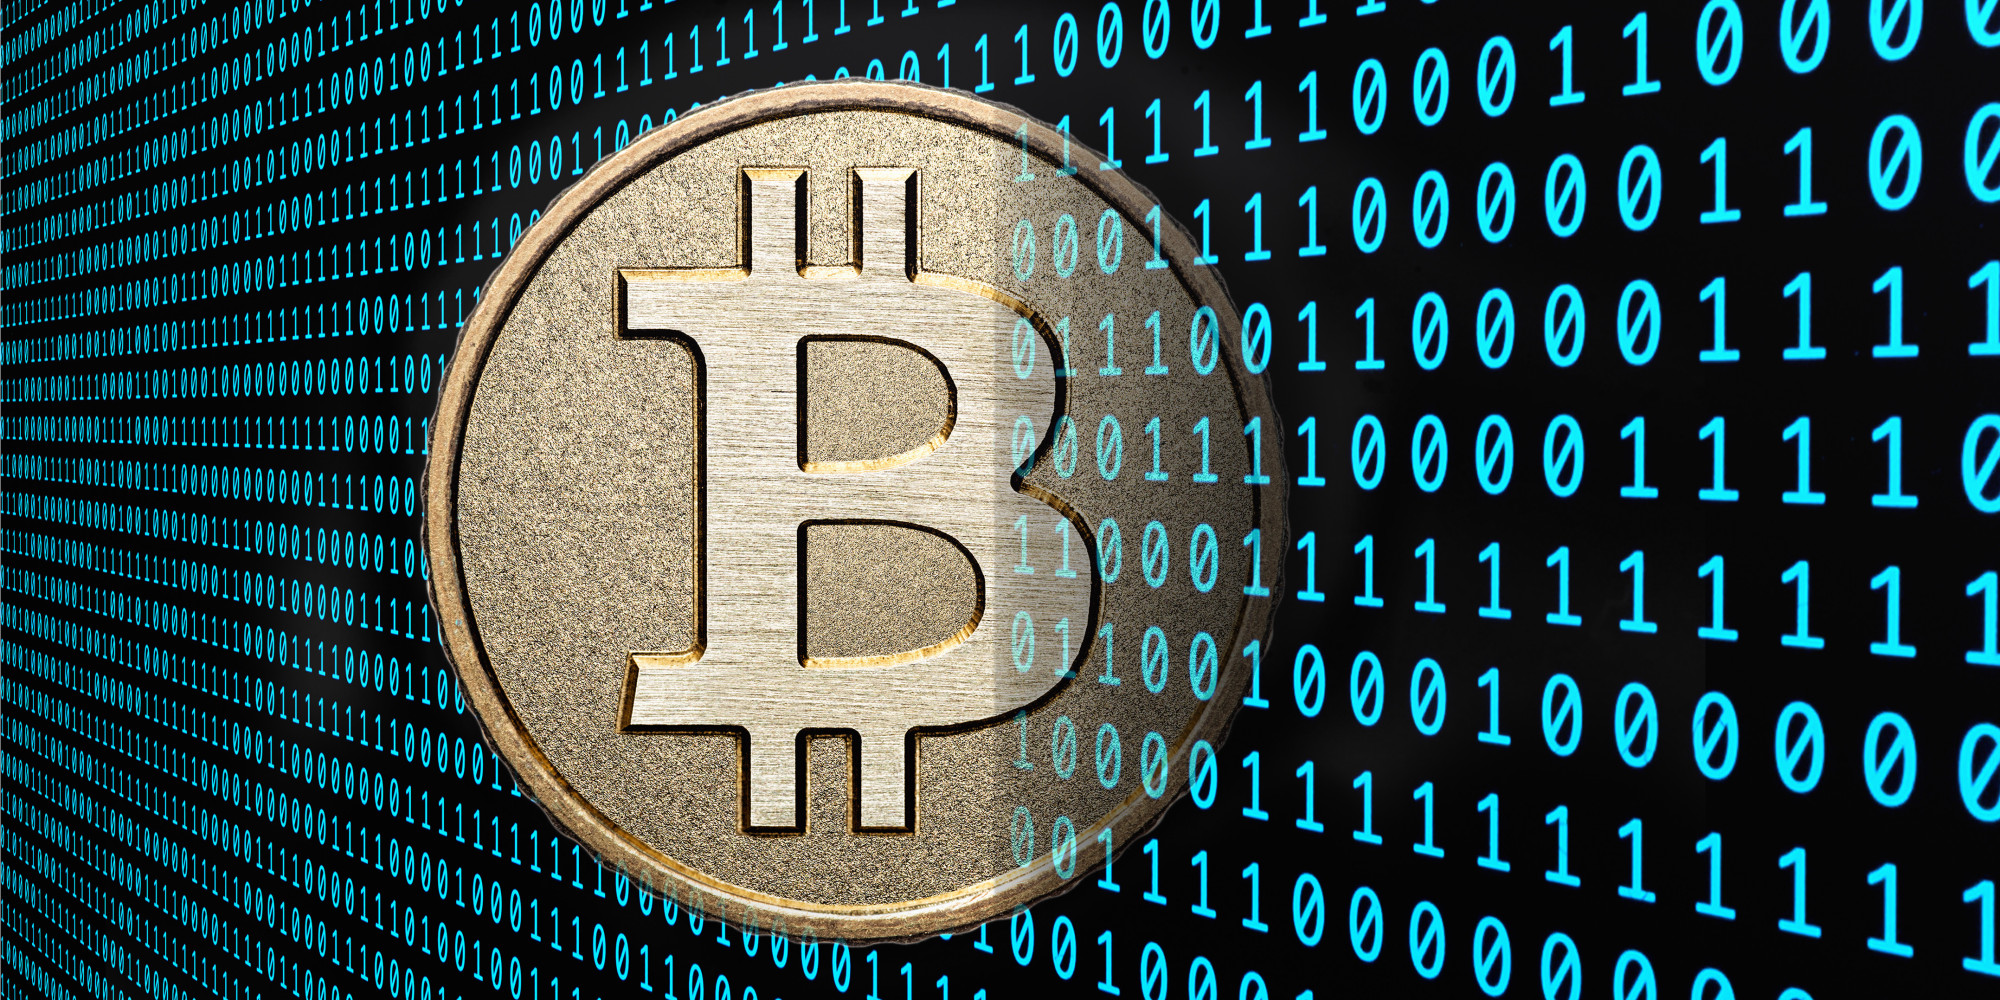 Trinity students to create bitcoin credit-check database